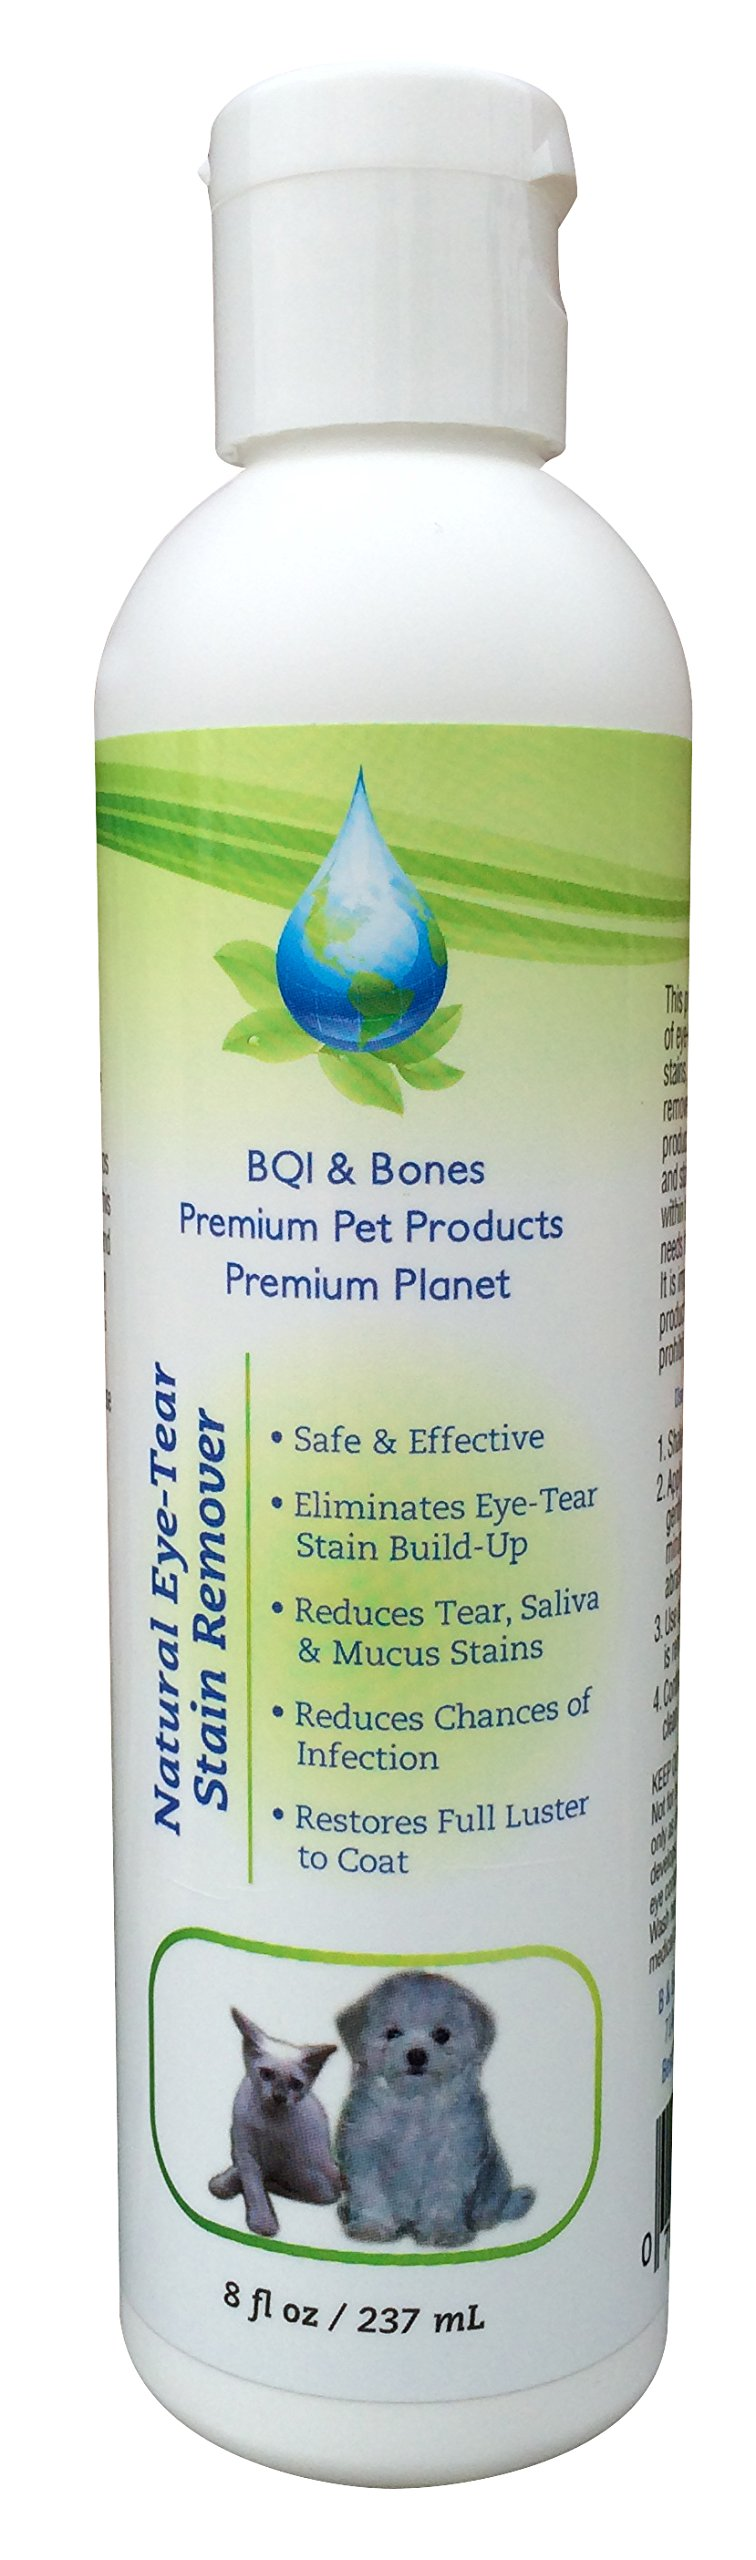 BQI & Bones Tear and Mucus Stain Remover dogs or cats Natural Plant Based Treatment to reduce long term staining Gentle Safe and Easy External Use Cleaner! Made in USA